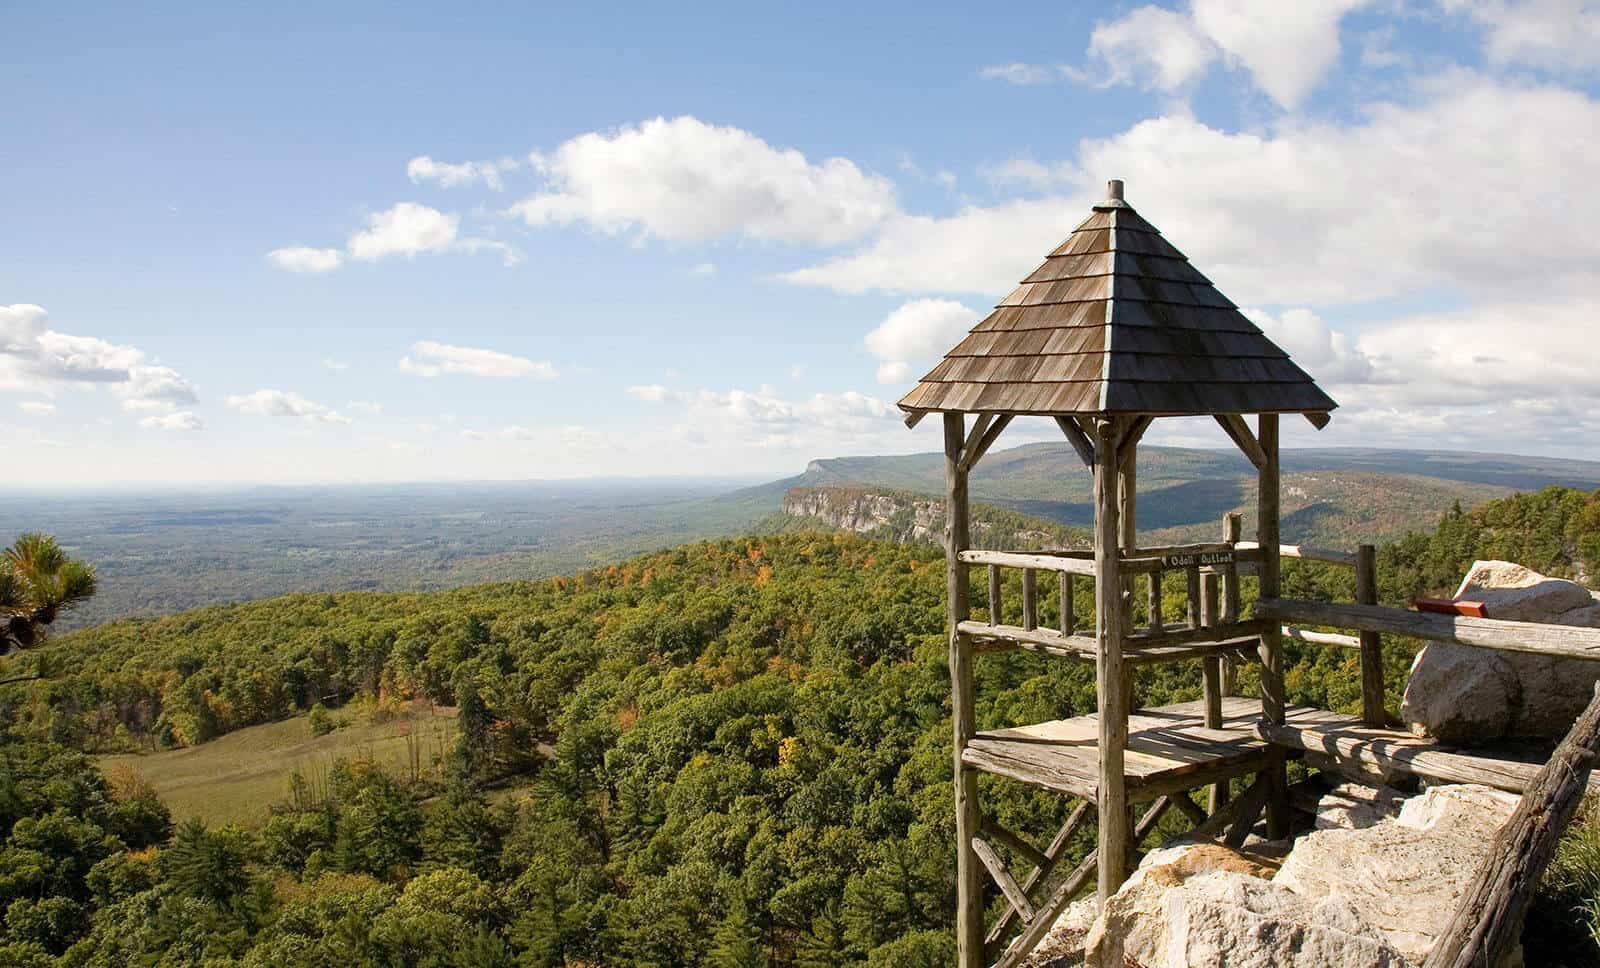 Summerhouse at Mohonk Mountain House